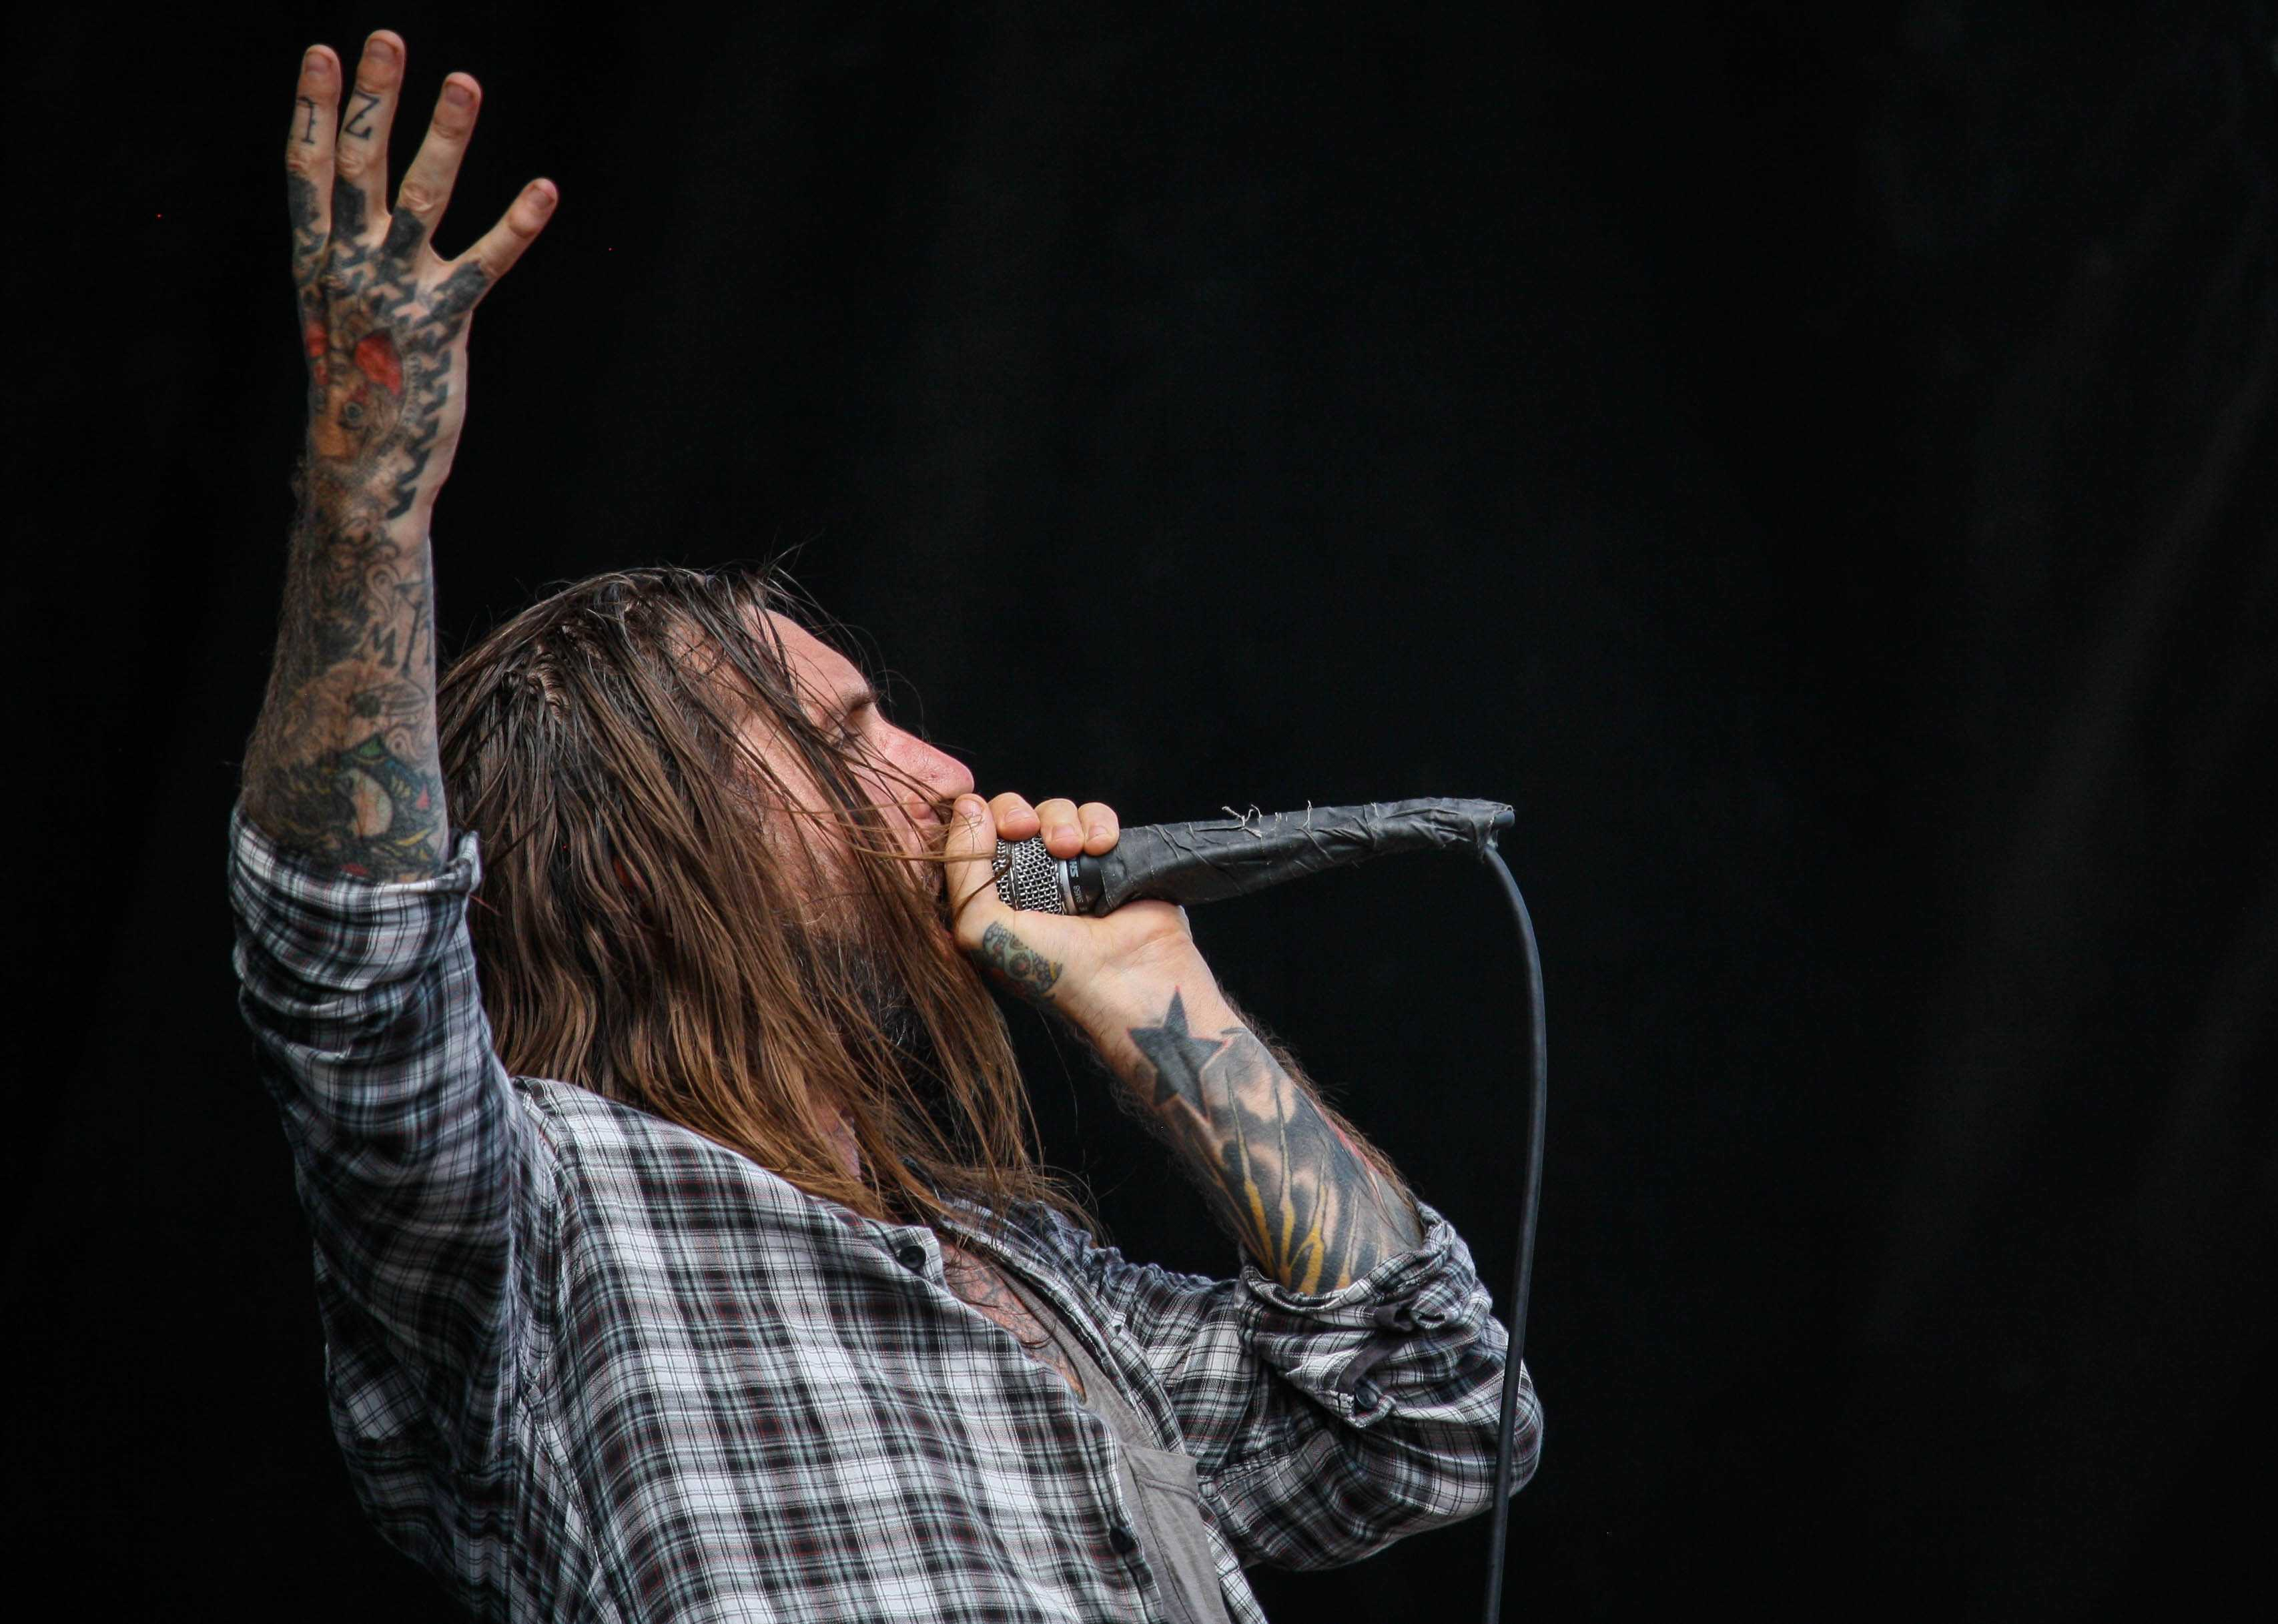 Keith Buckley of Every Time I Die. Unfortunately I wasn't able to actually shoot I See Stars.